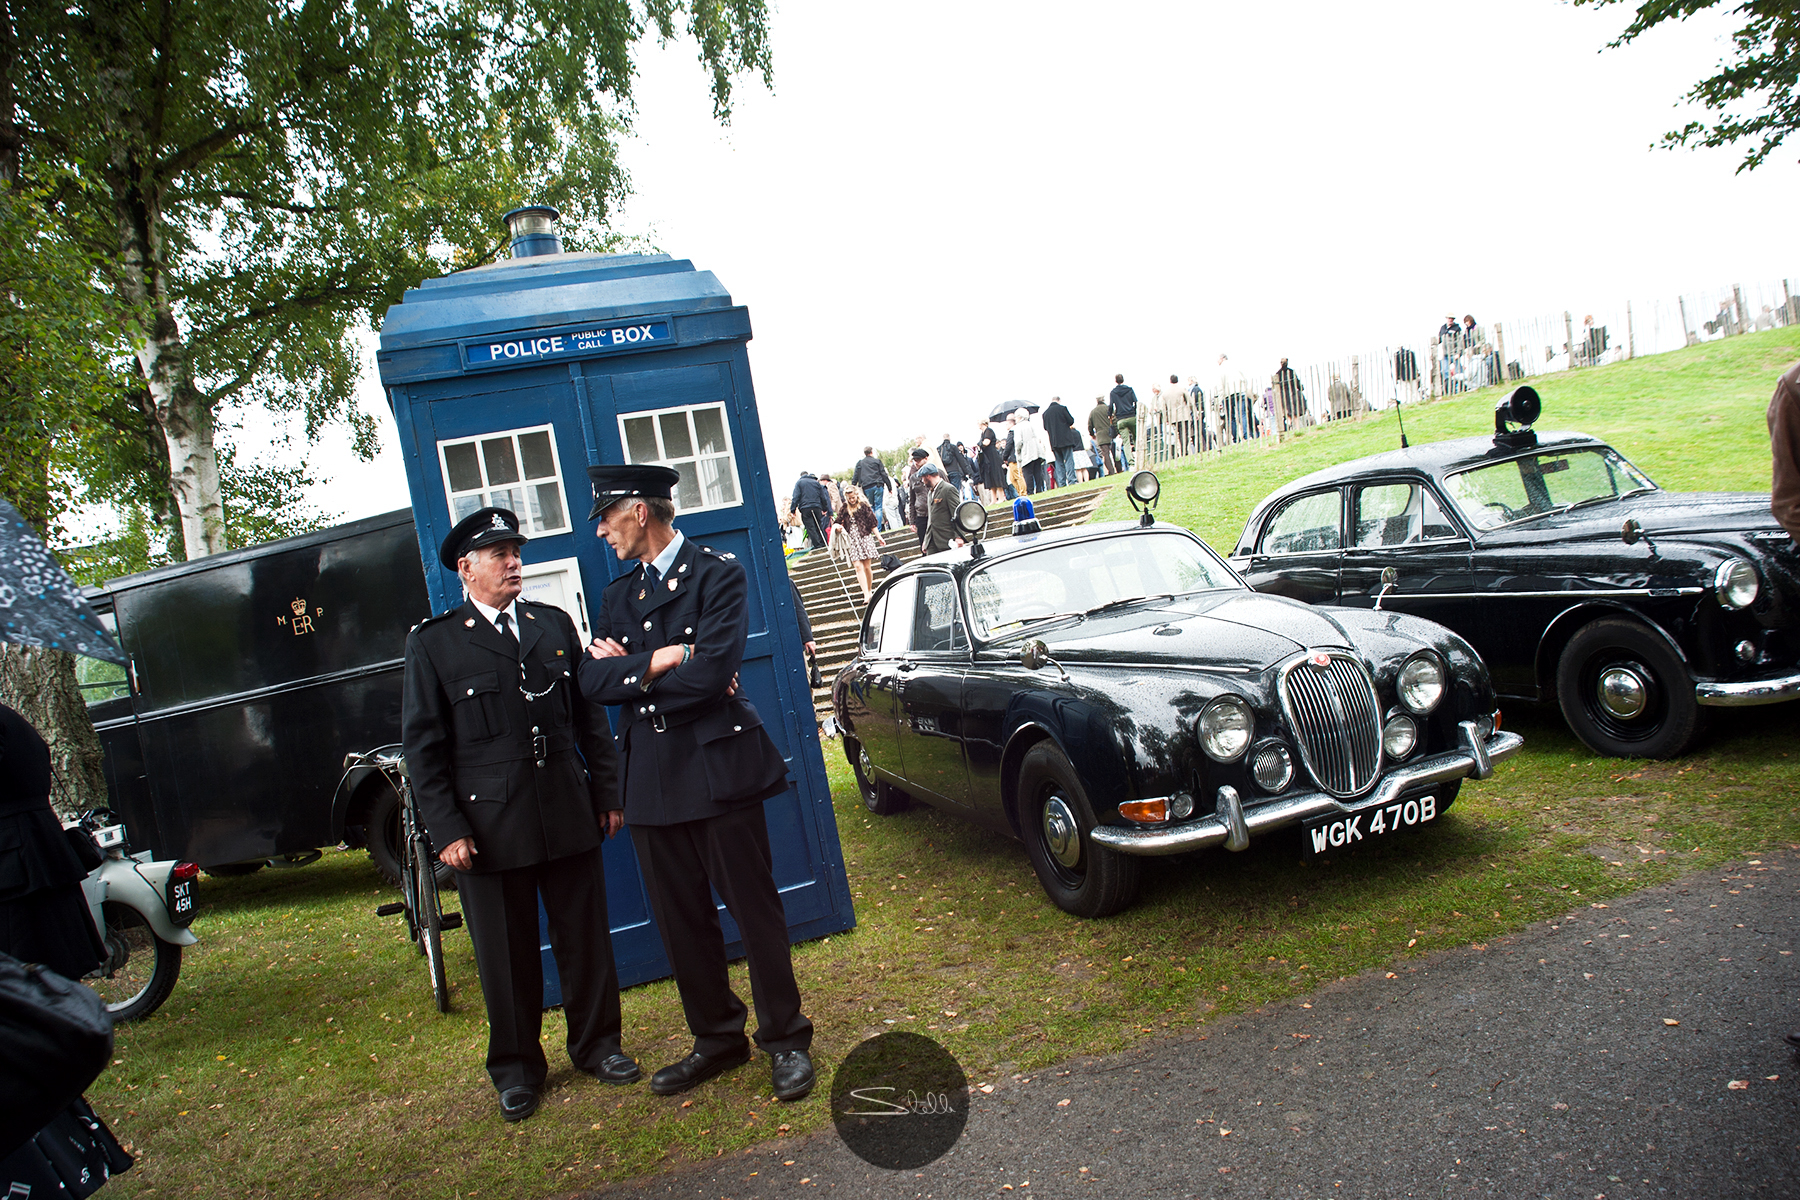 Stella Scordellis Goodwood Revival 2015 1 Watermarked.jpg